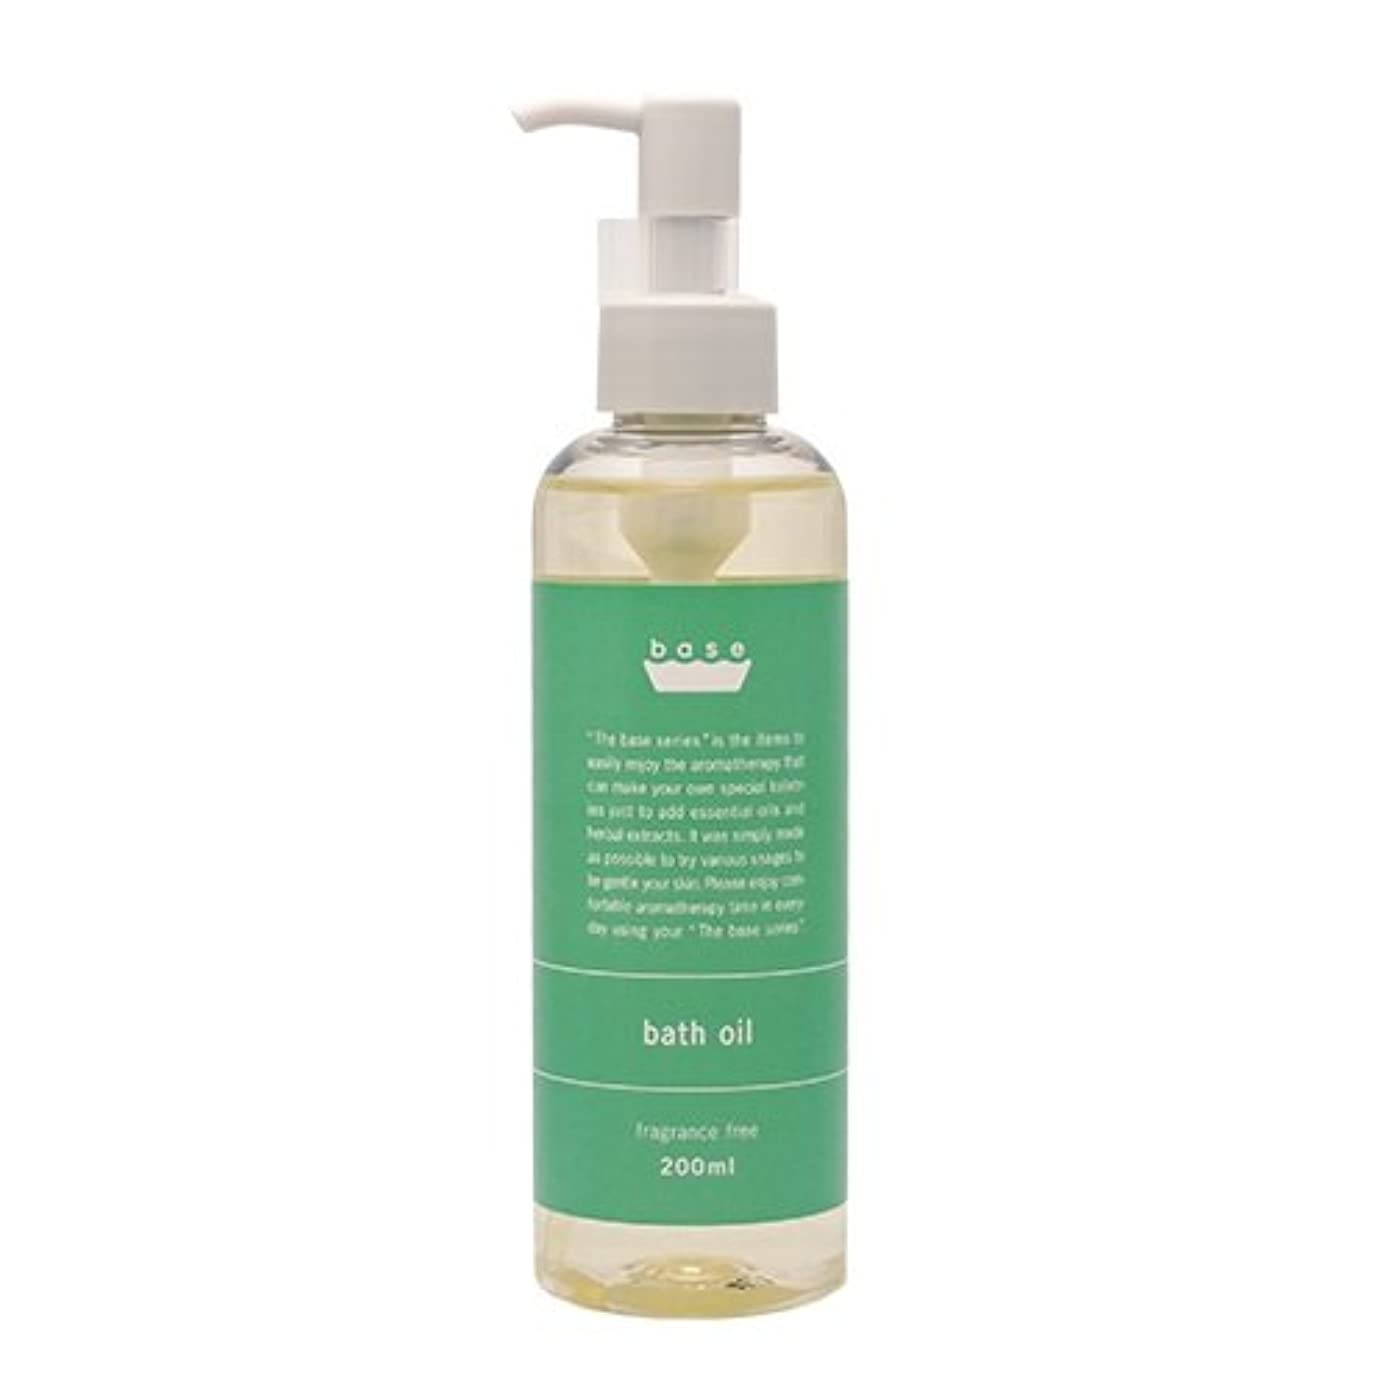 base bath oil(バスオイル)200ml